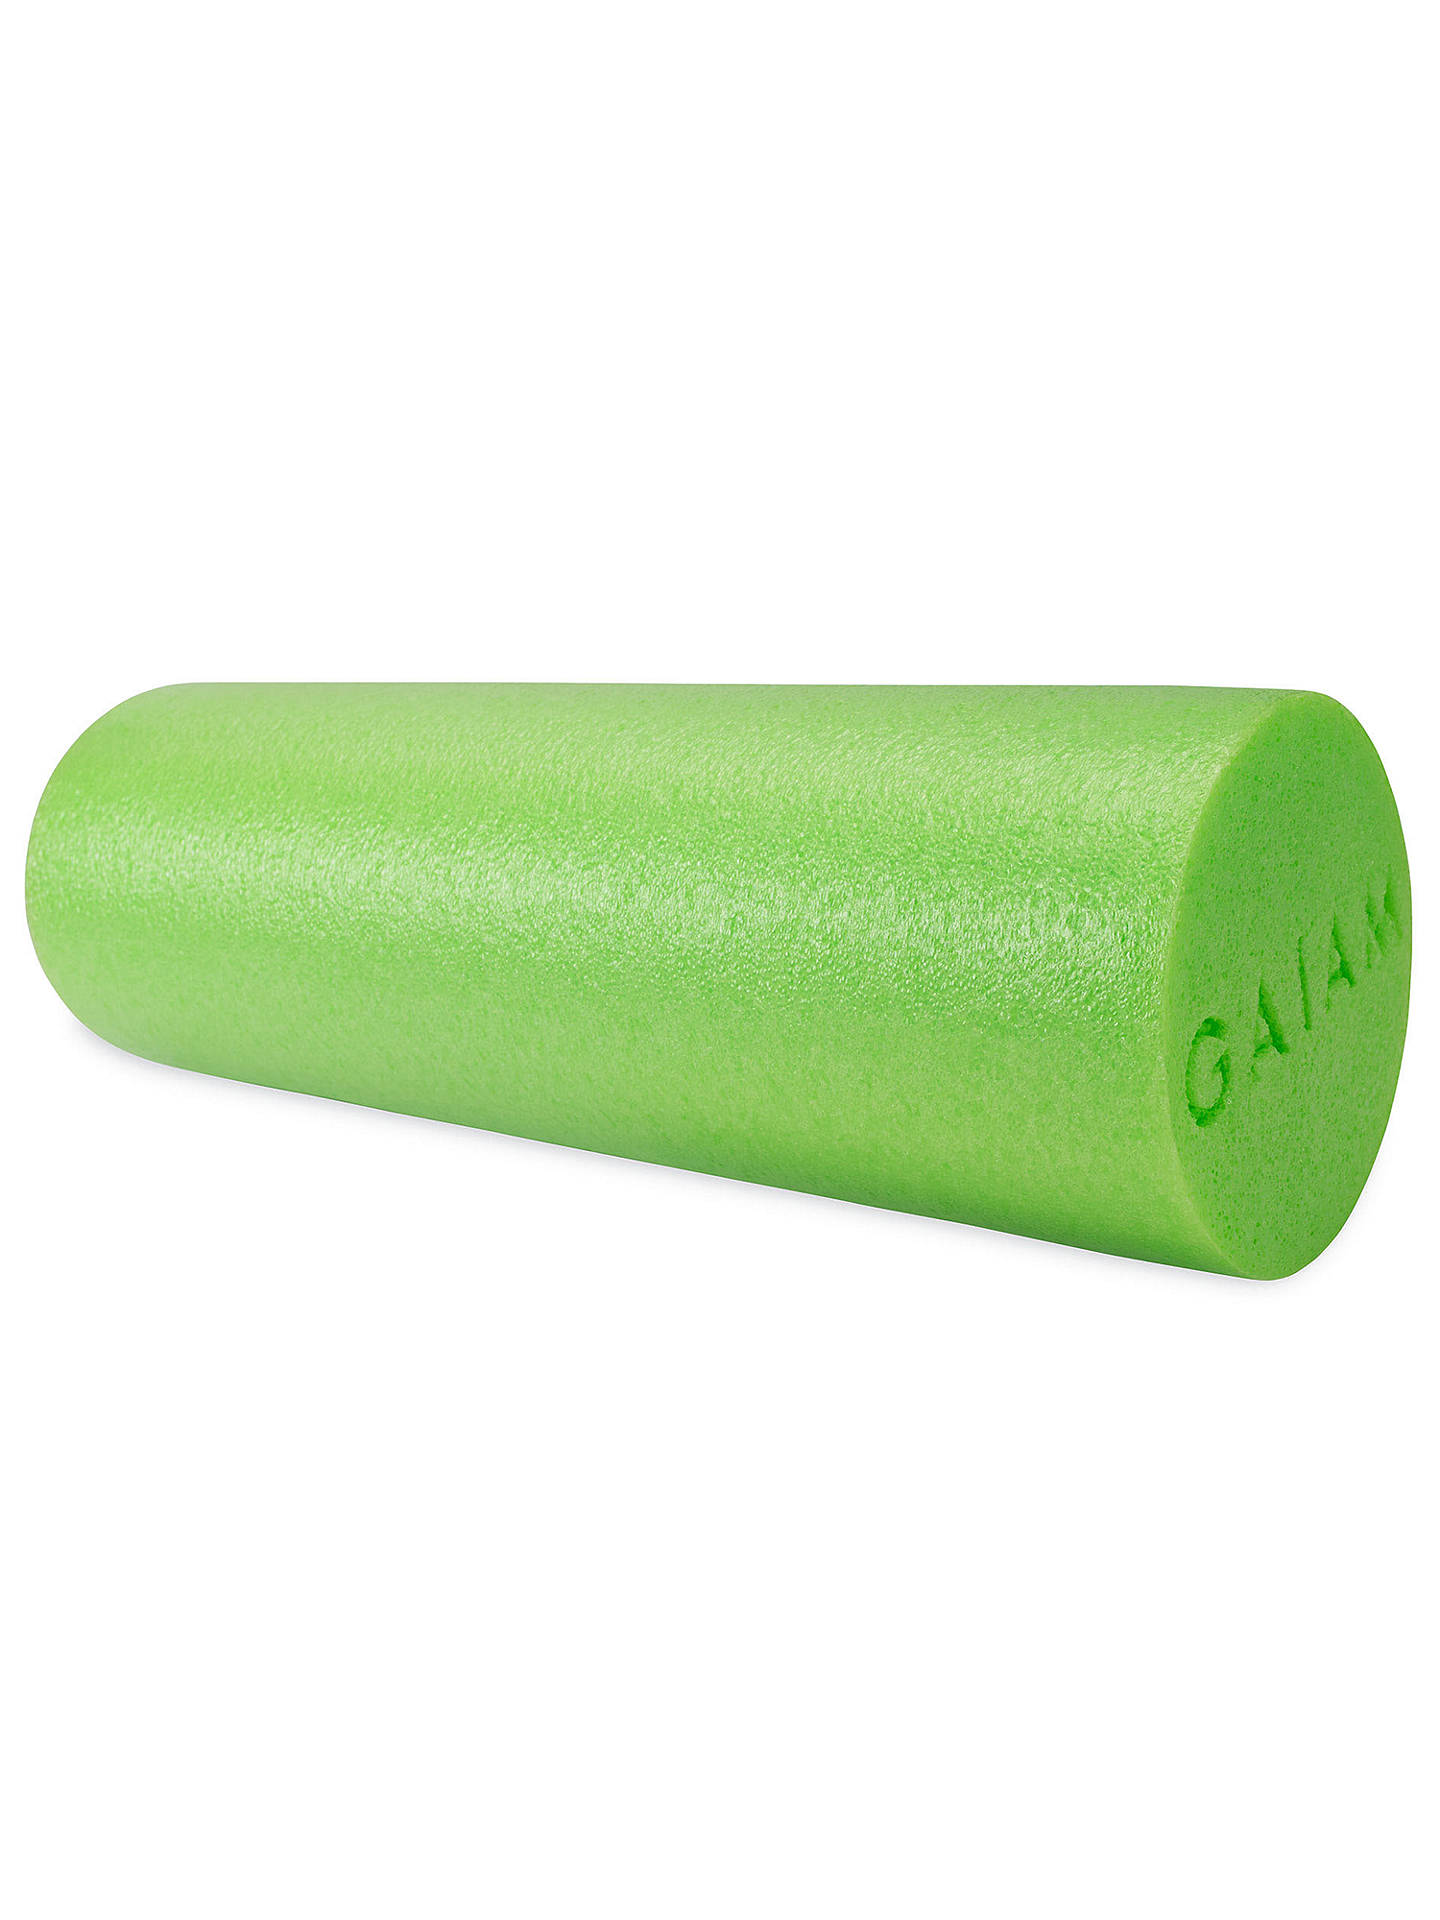 BuyGaiam Yoga Rolling Relief Kit Online at johnlewis.com